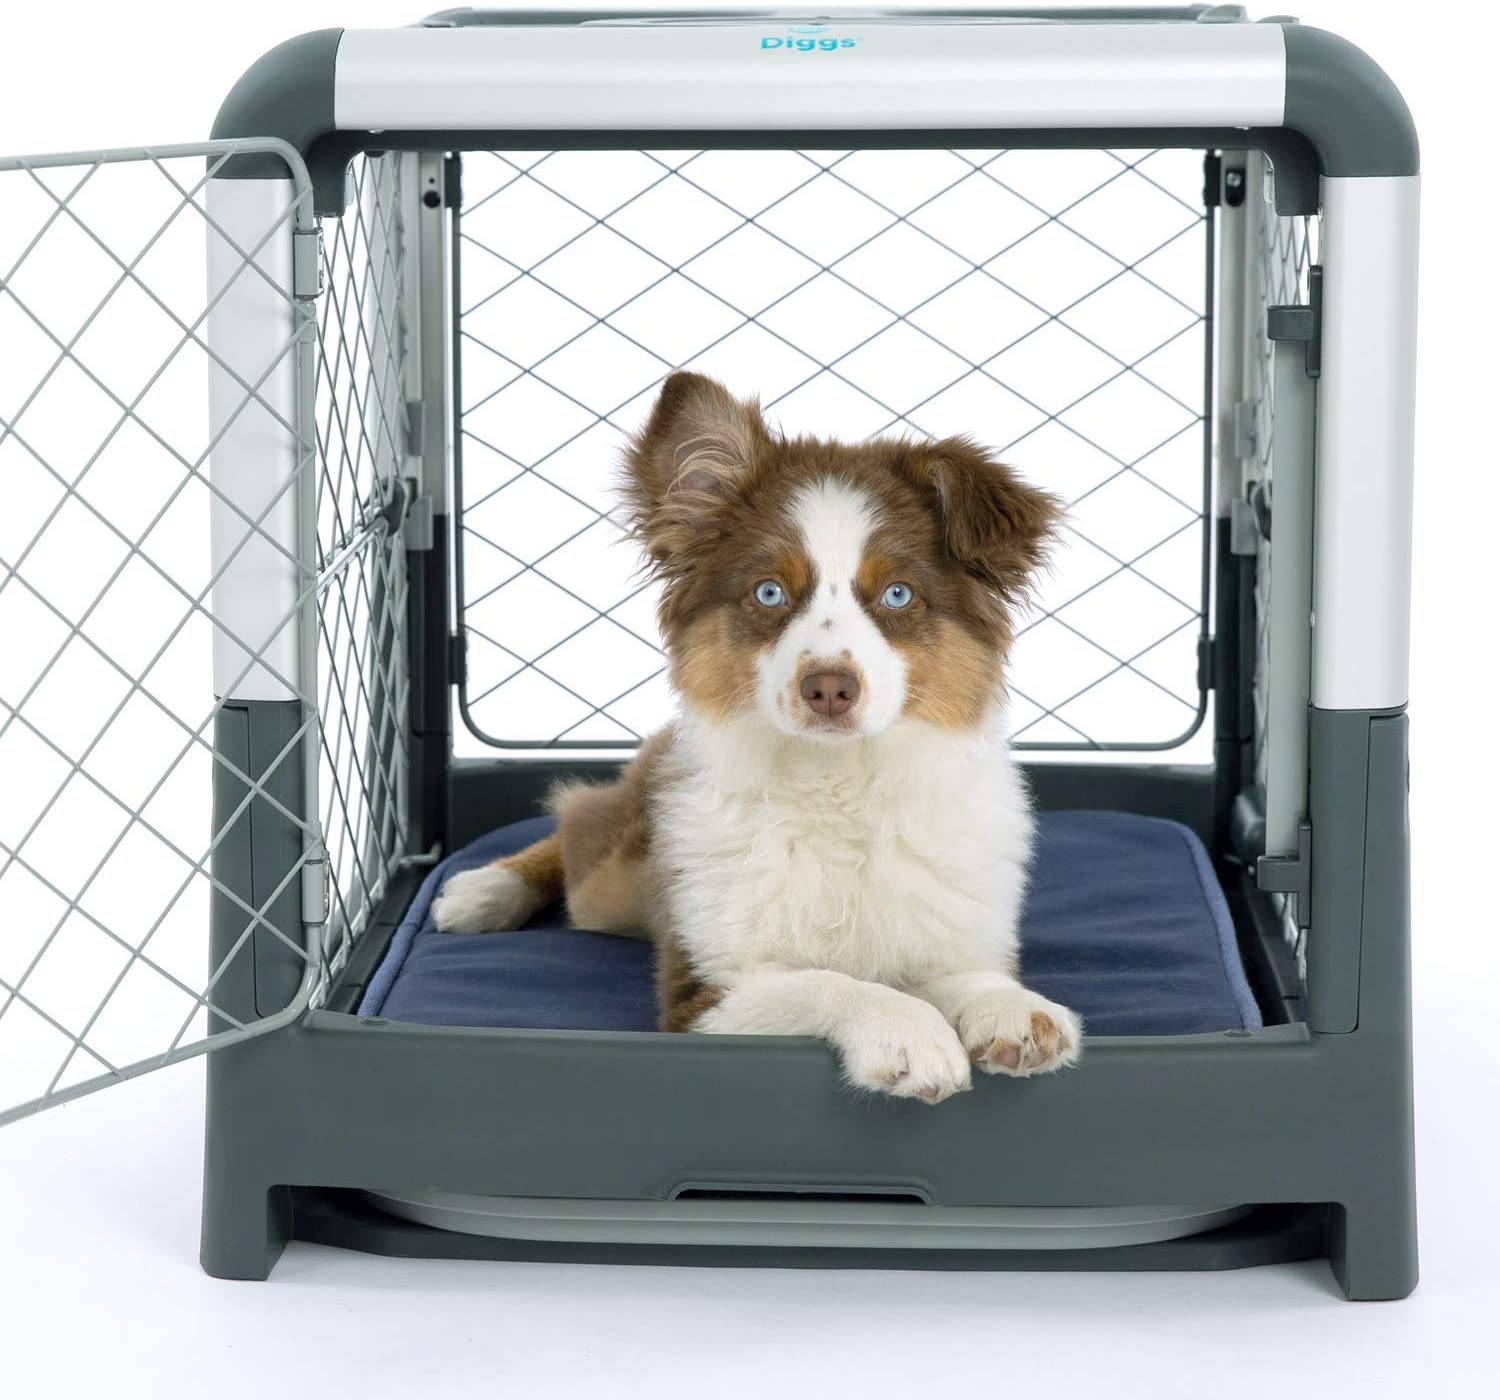 Best-overall-Diggs-Revol-Dog-Crate-best-dog-crates